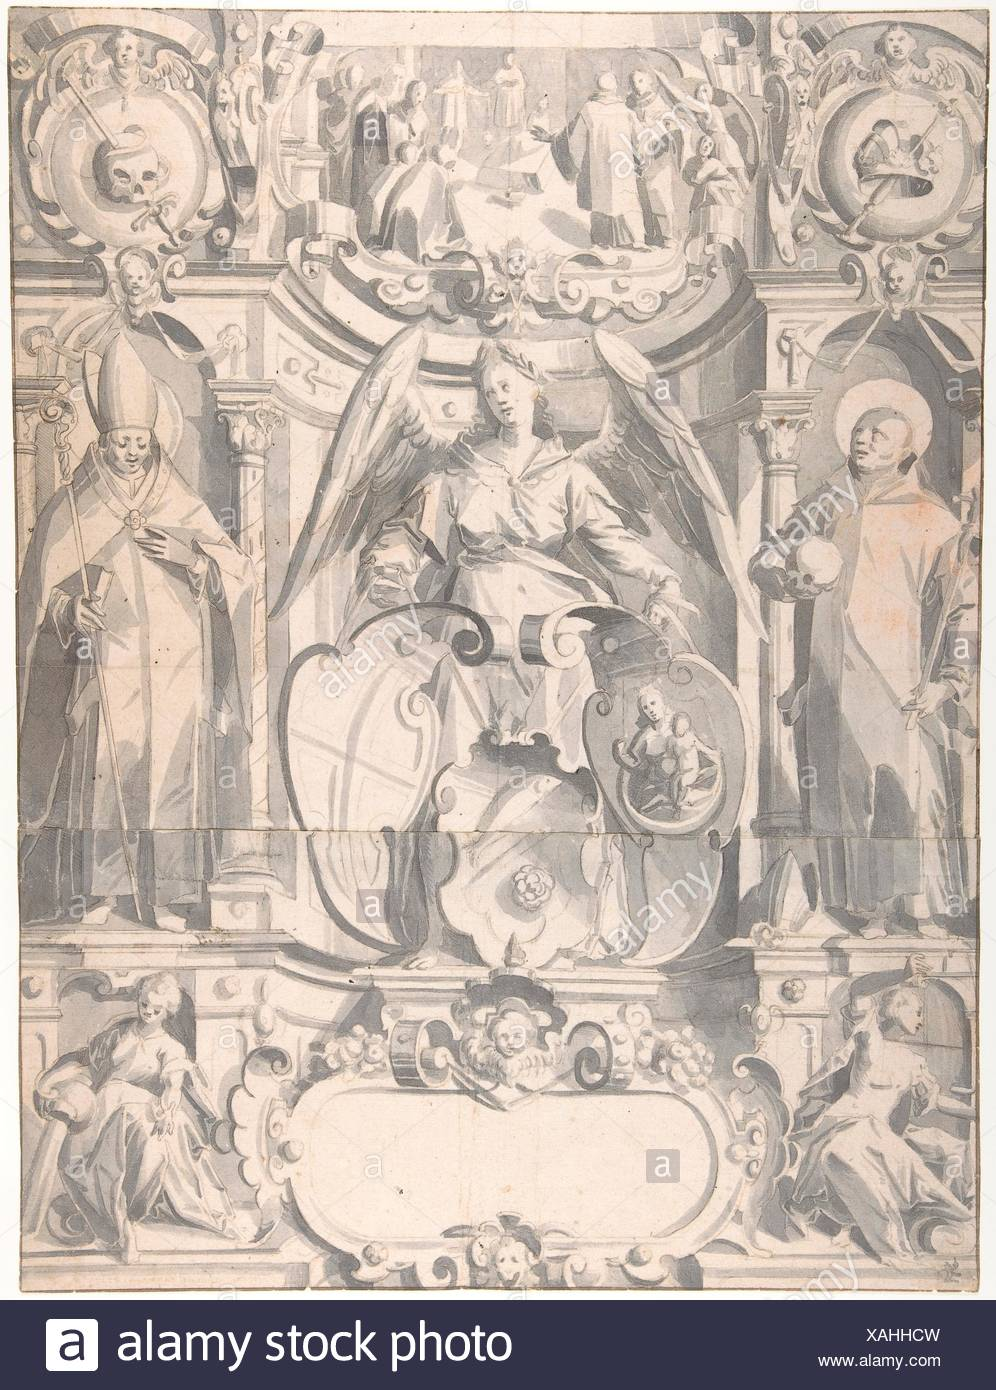 Design for a Stained Glass Window or Frontispiece with the Arms of a Cleric. Artist: Johann Heiss (German, Memmingen 1640-1704 Augsburg); Date: Stock Photo